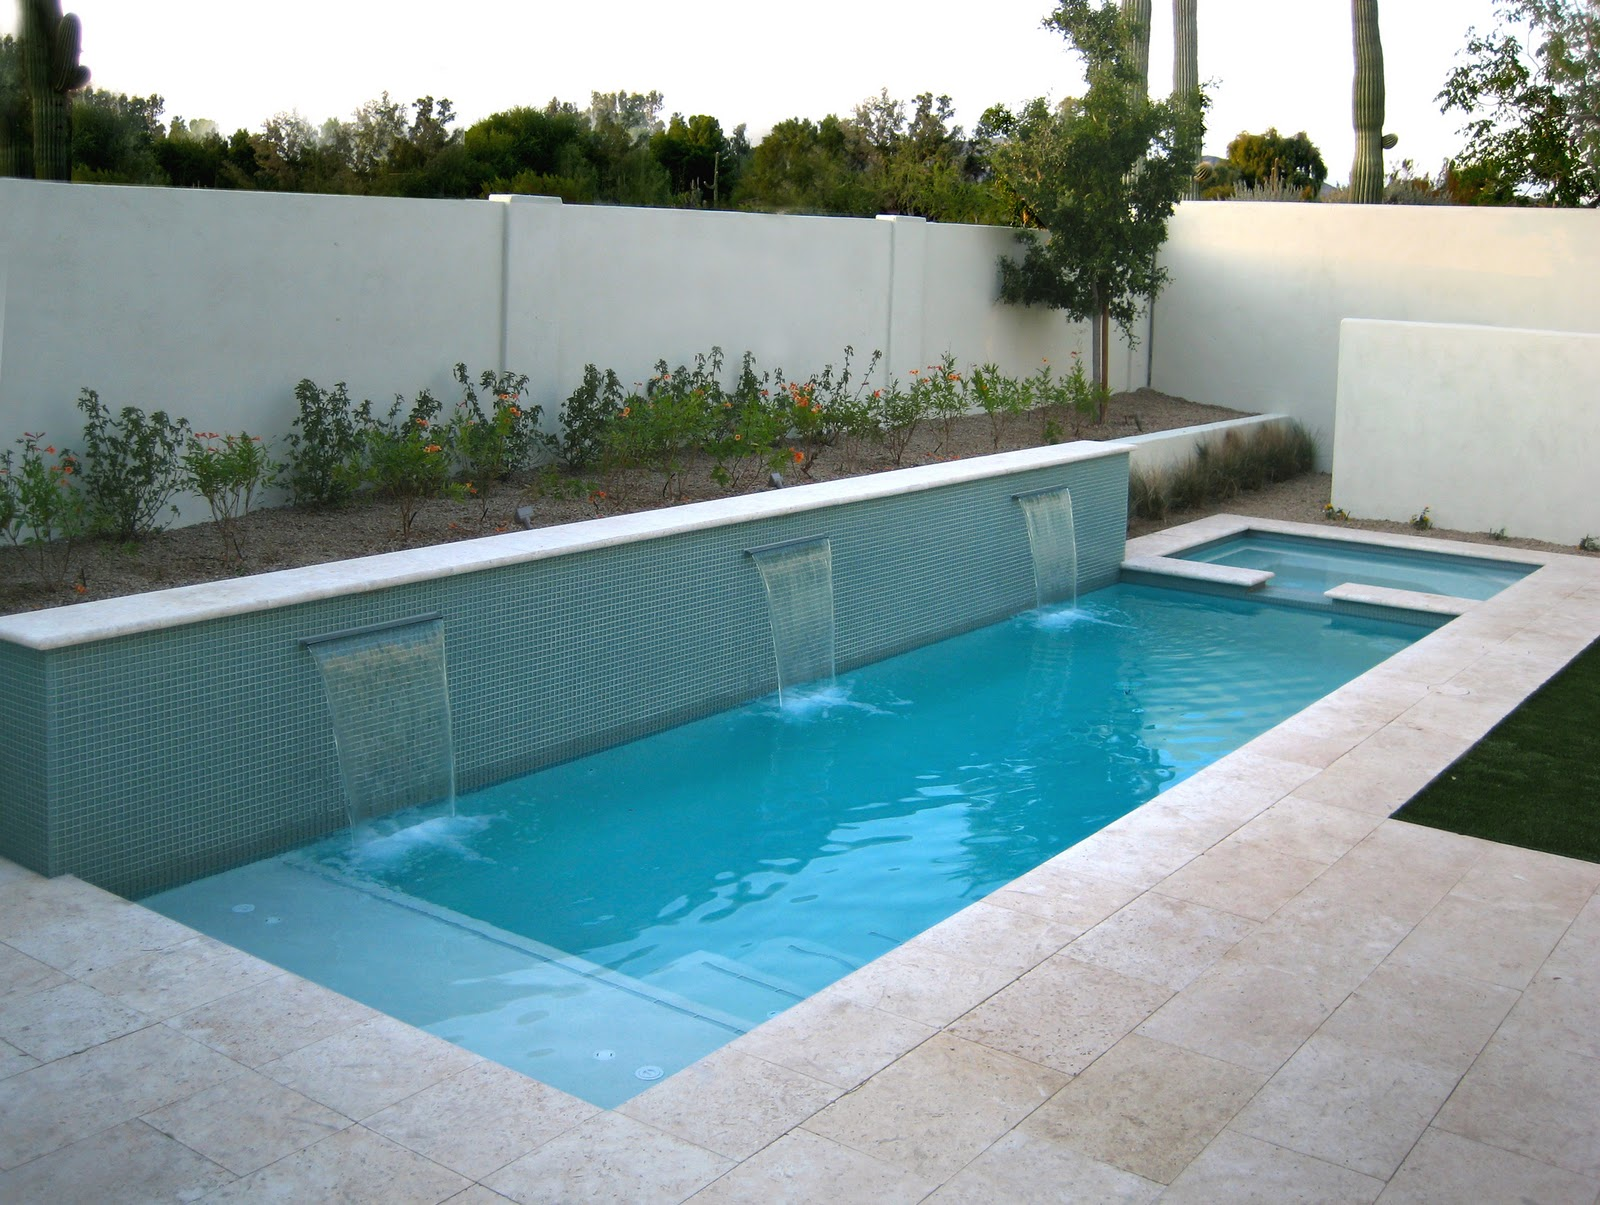 25 fabulous small backyard designs with swimming pool for Poolside ideas